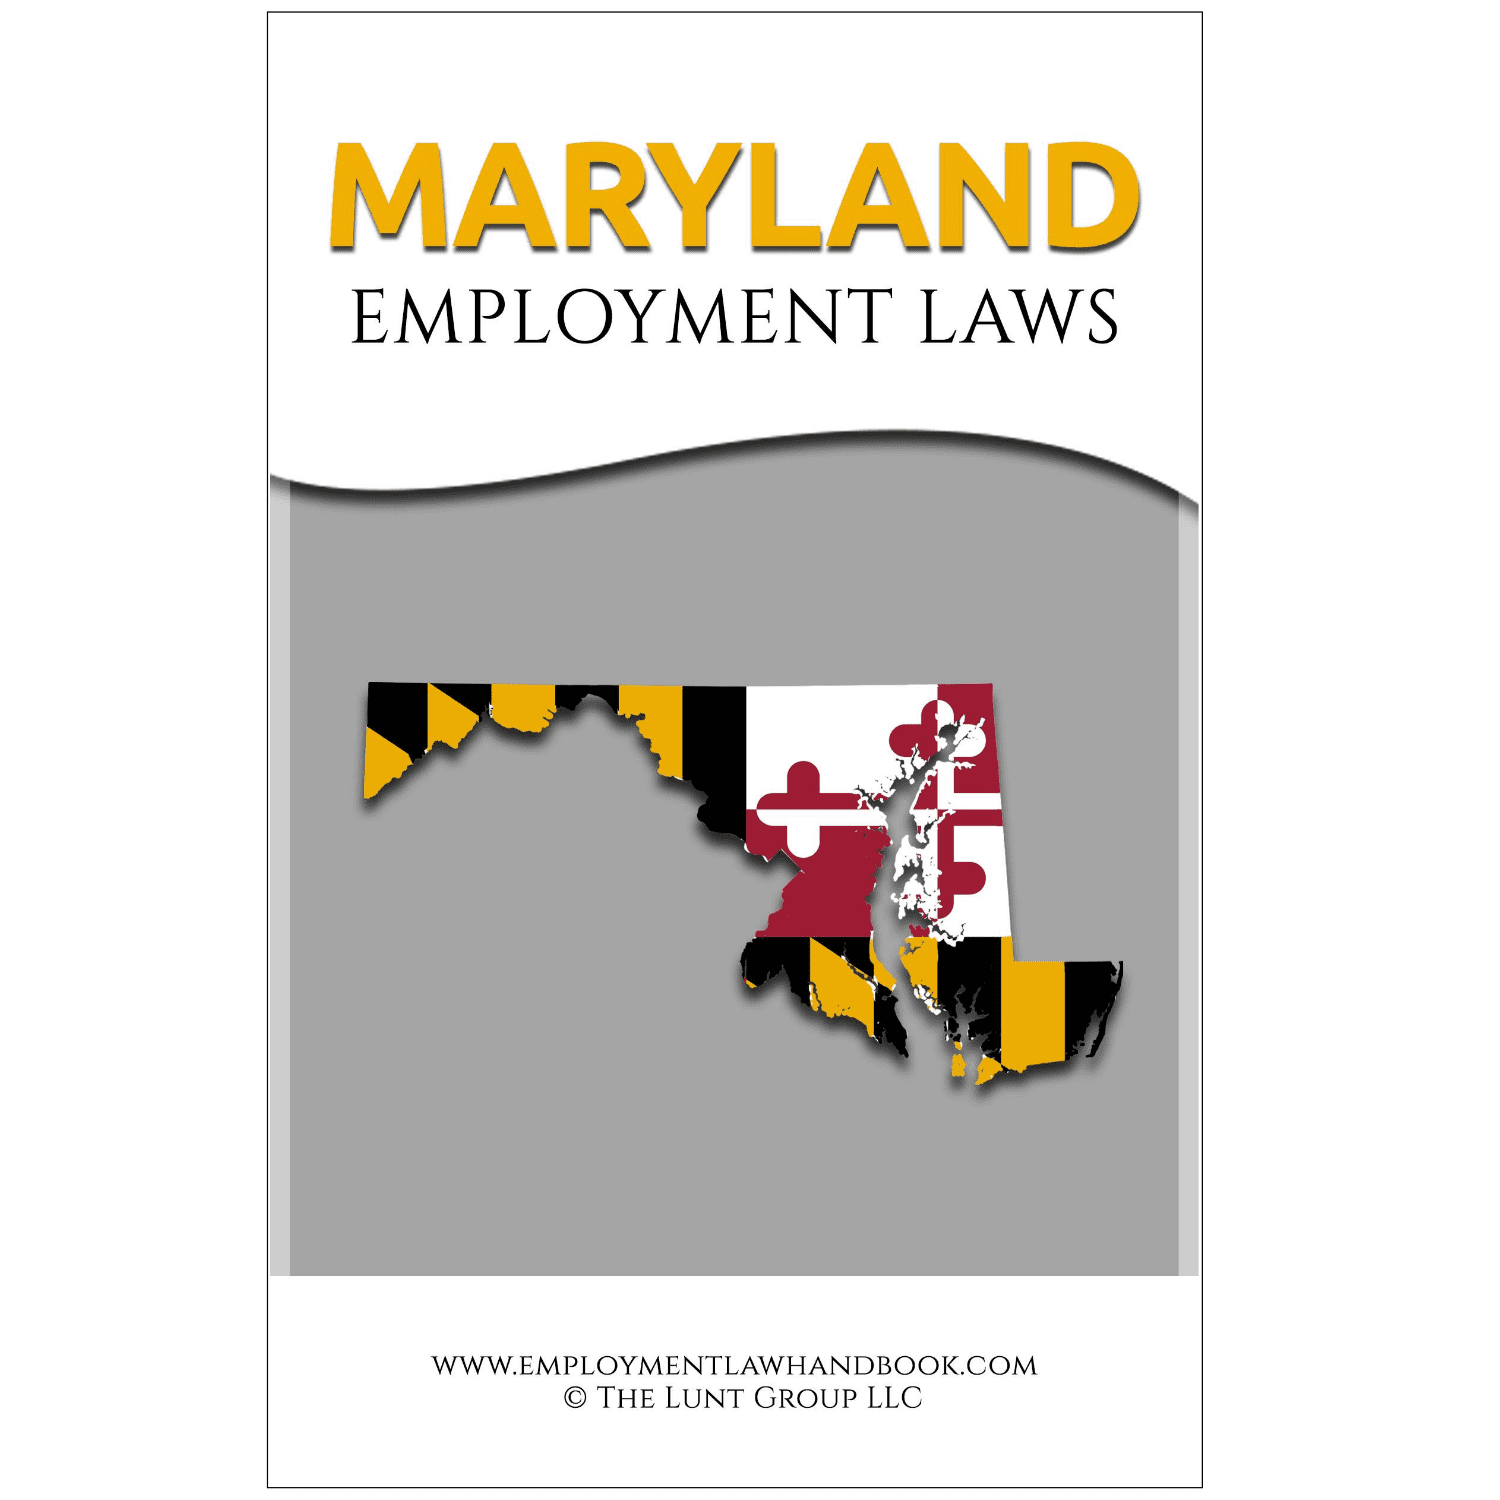 Maryland Employment Laws_sq